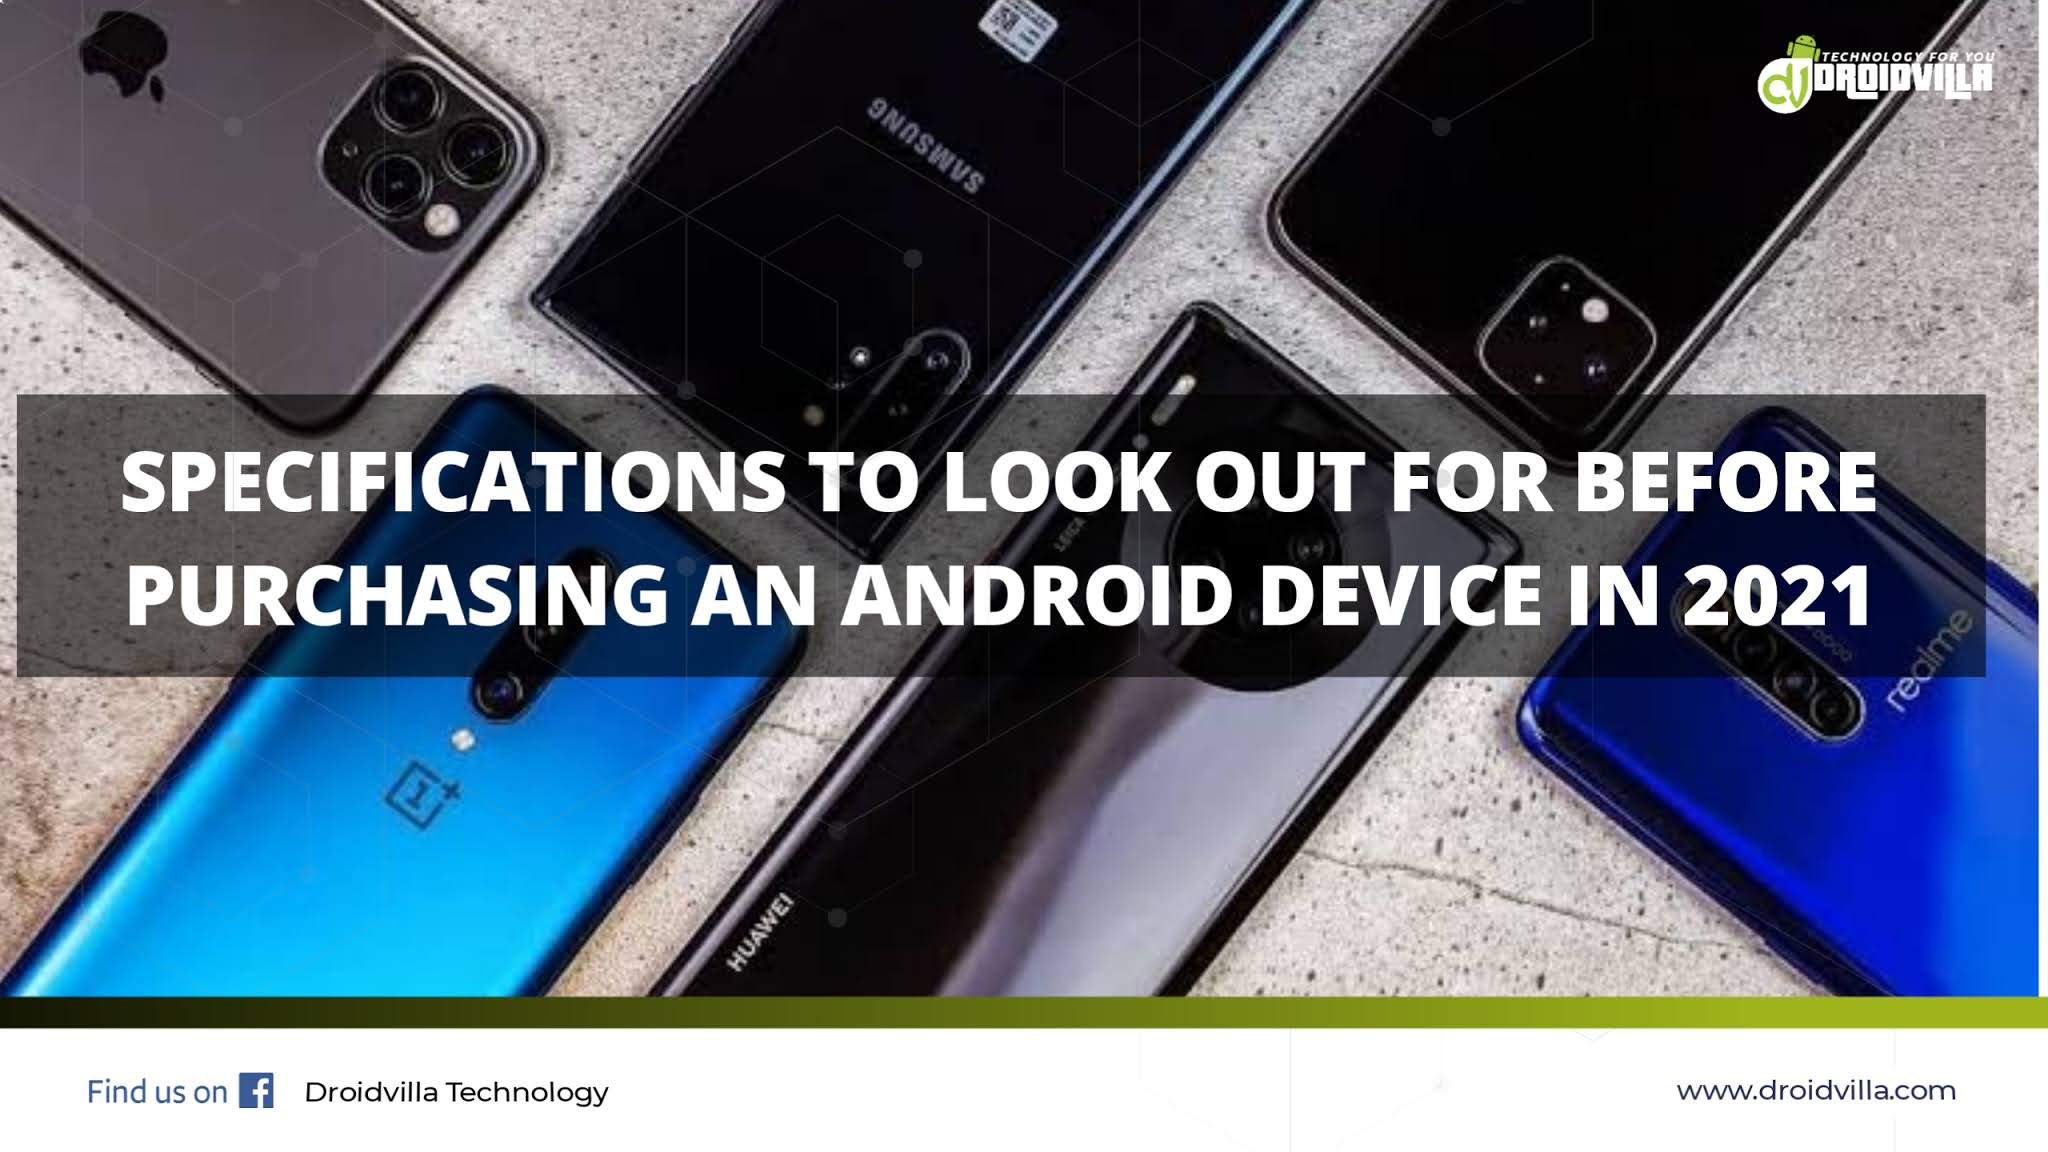 Specifications to look out for before purchasing an android device in 2021